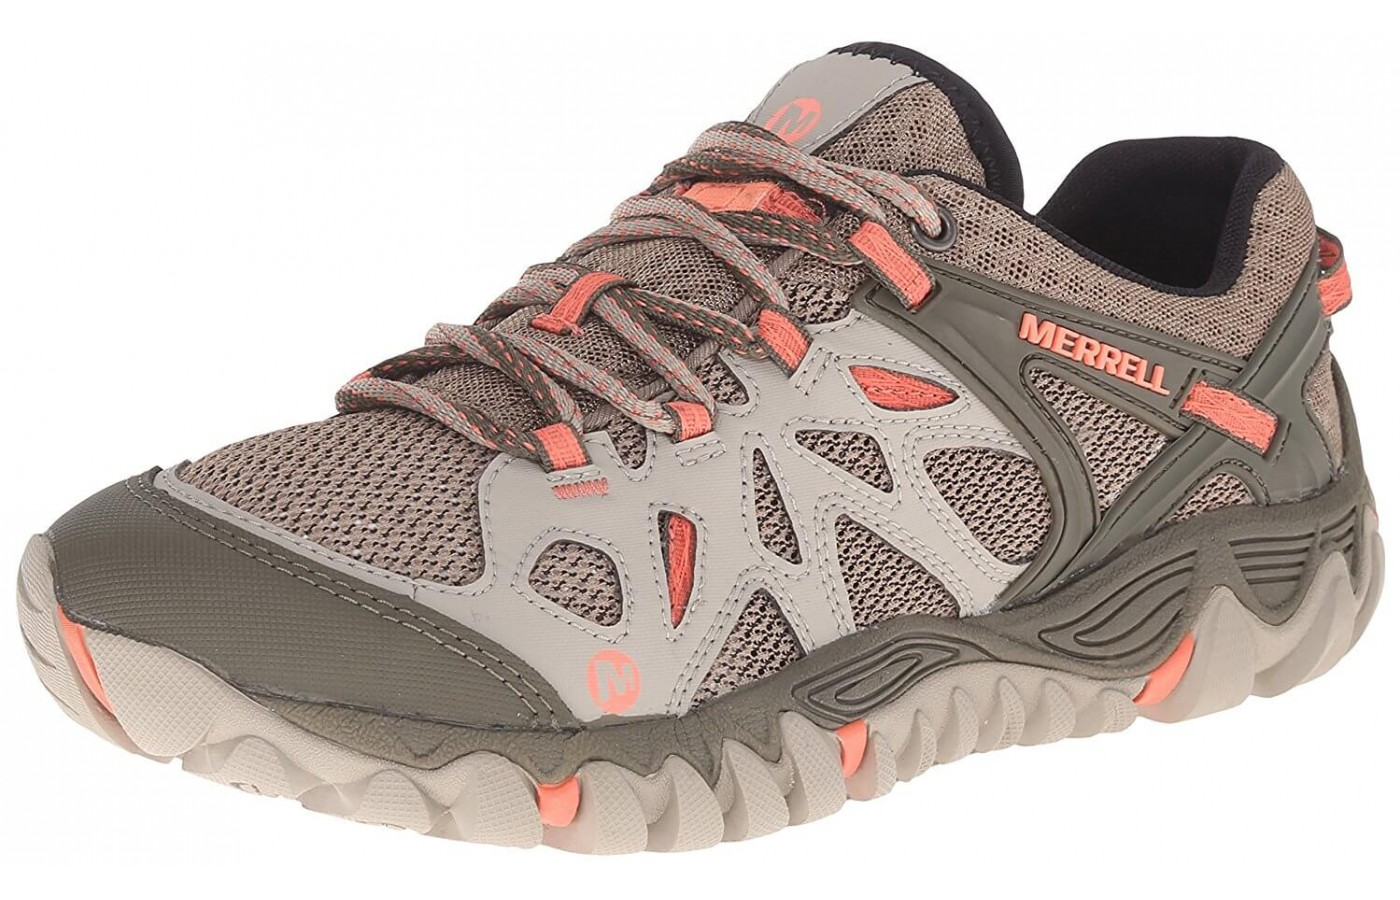 c1826ae85b Merrell All Out Blaze Aero Sport is a quality trail running shoe ...